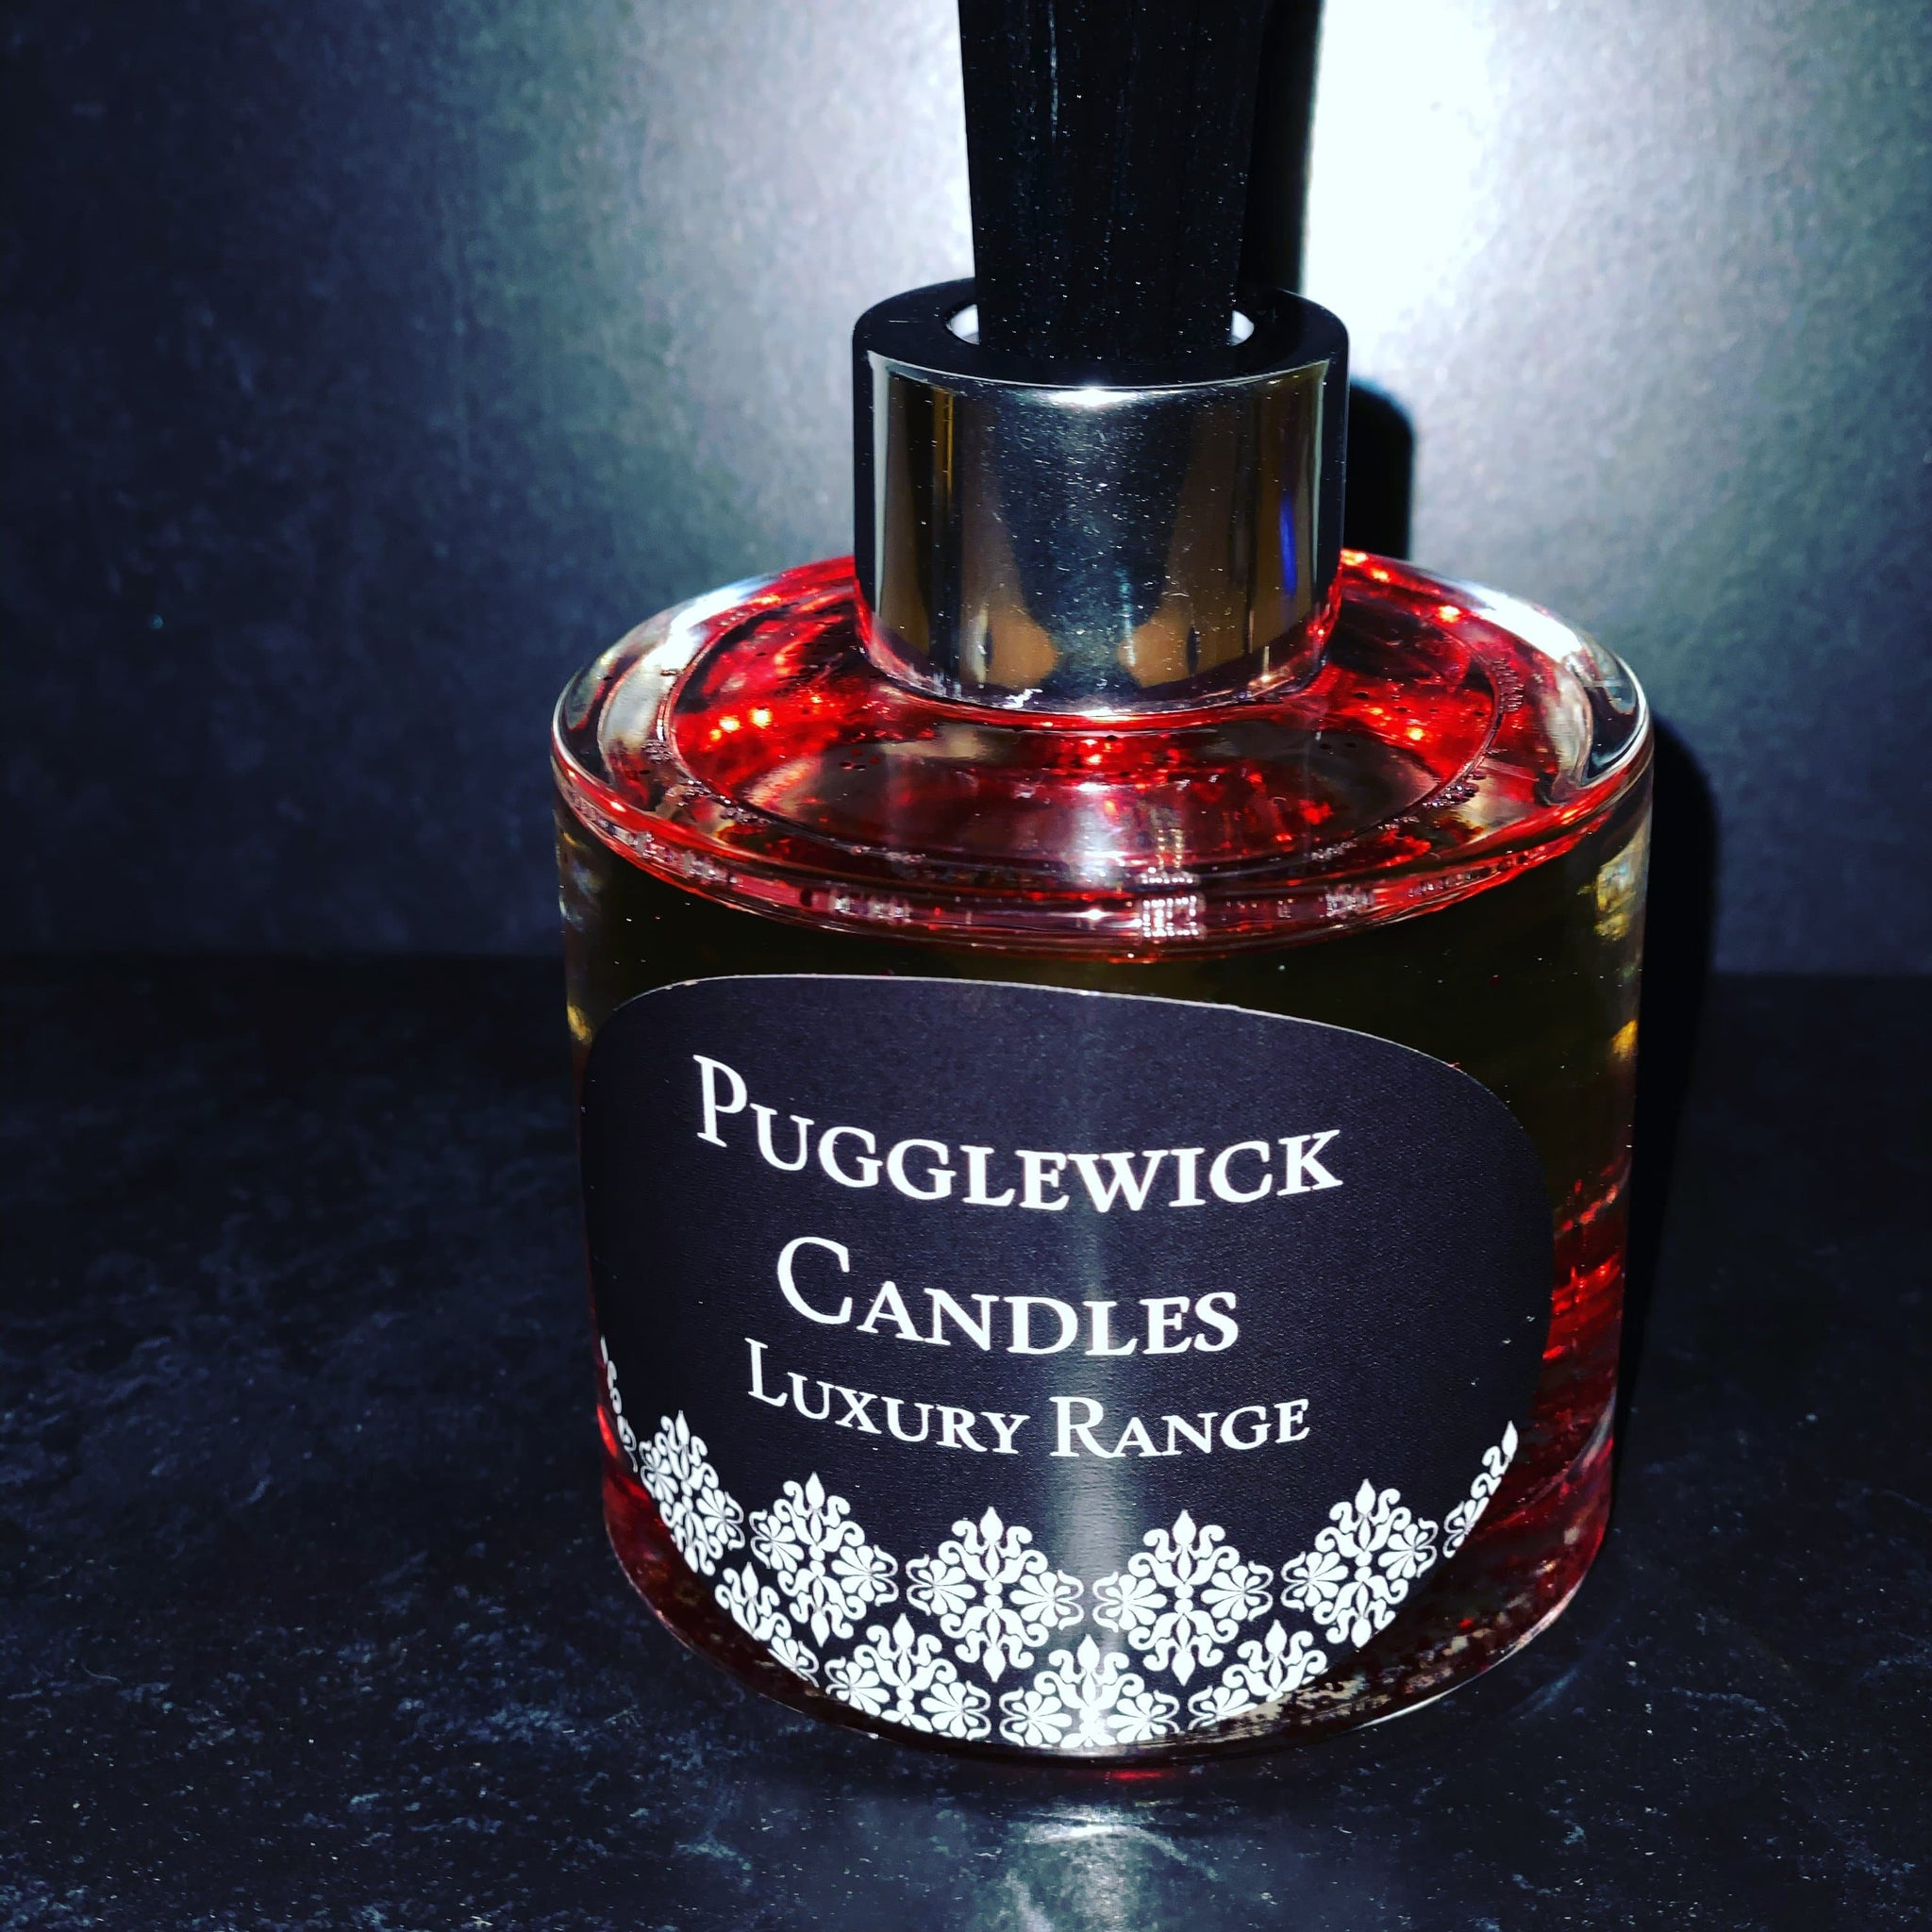 Fragrance inspired Reed diffuser - Pugglewick Candles